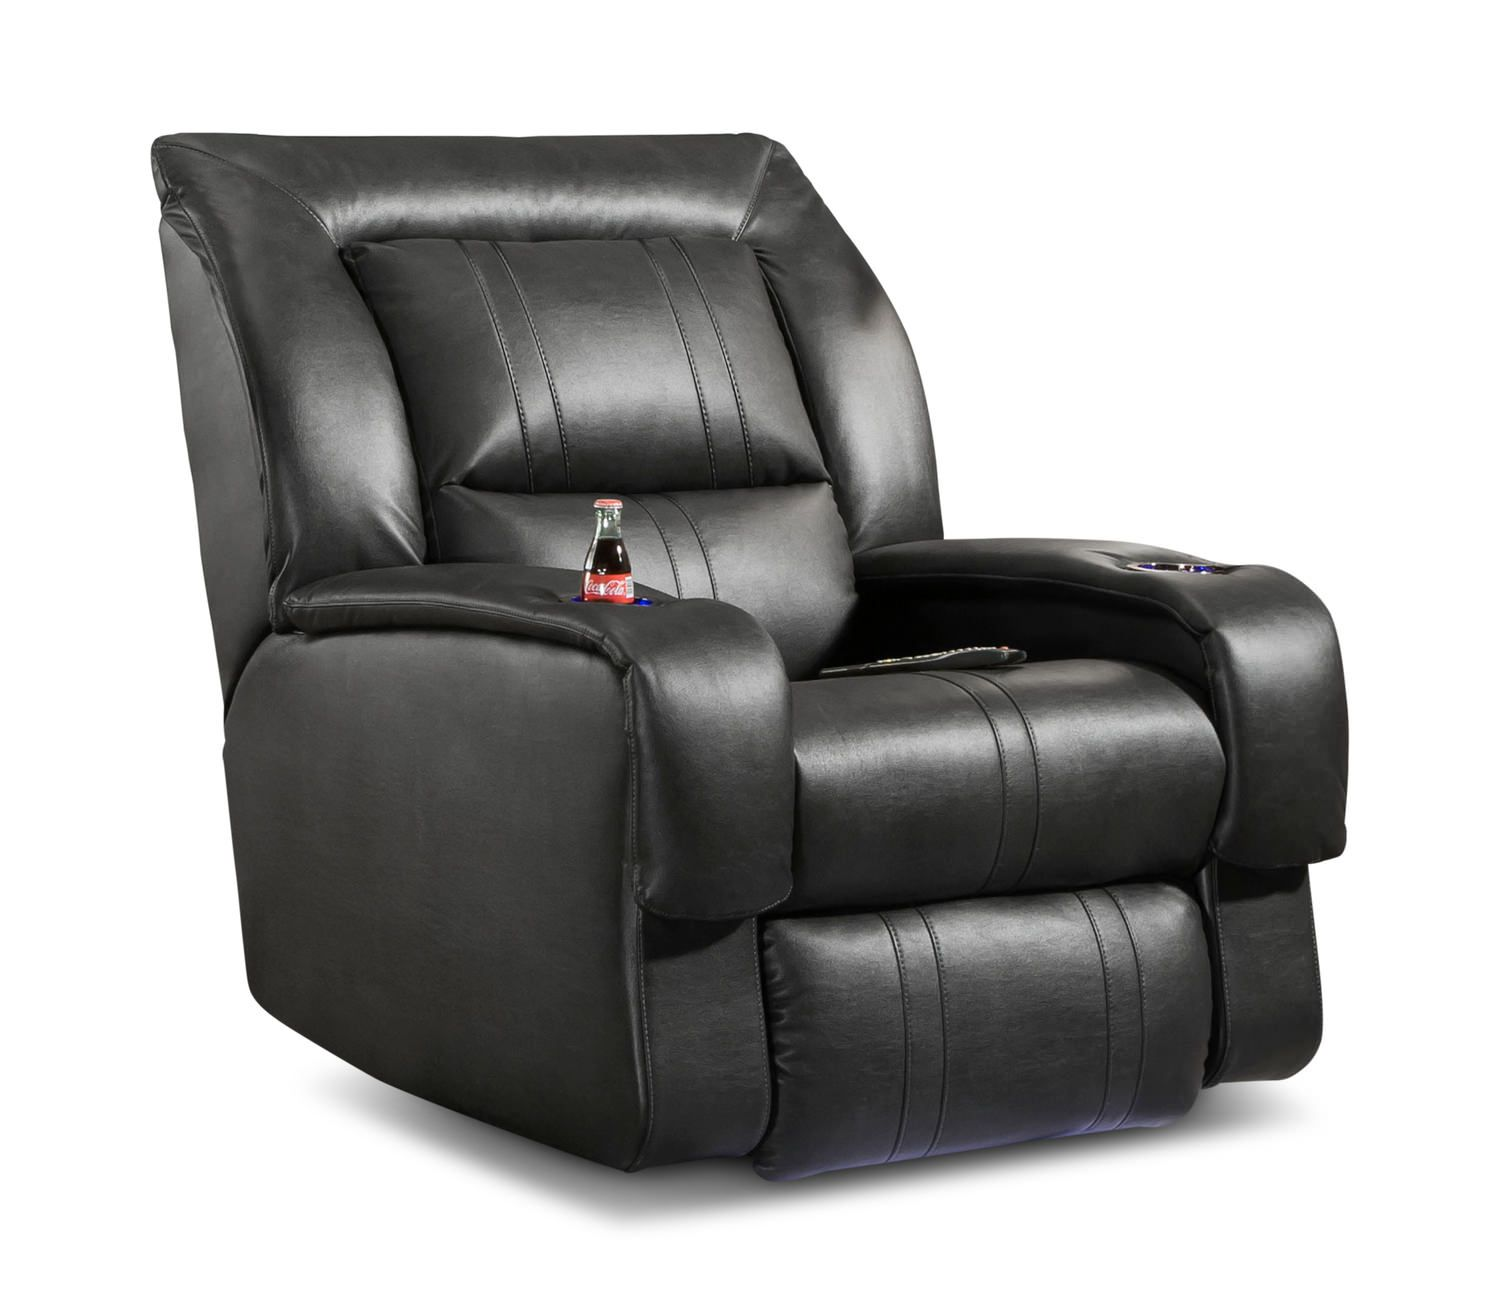 Roxie Power Home Theater Recliner Theater Recliners Hom Furniture Recliner